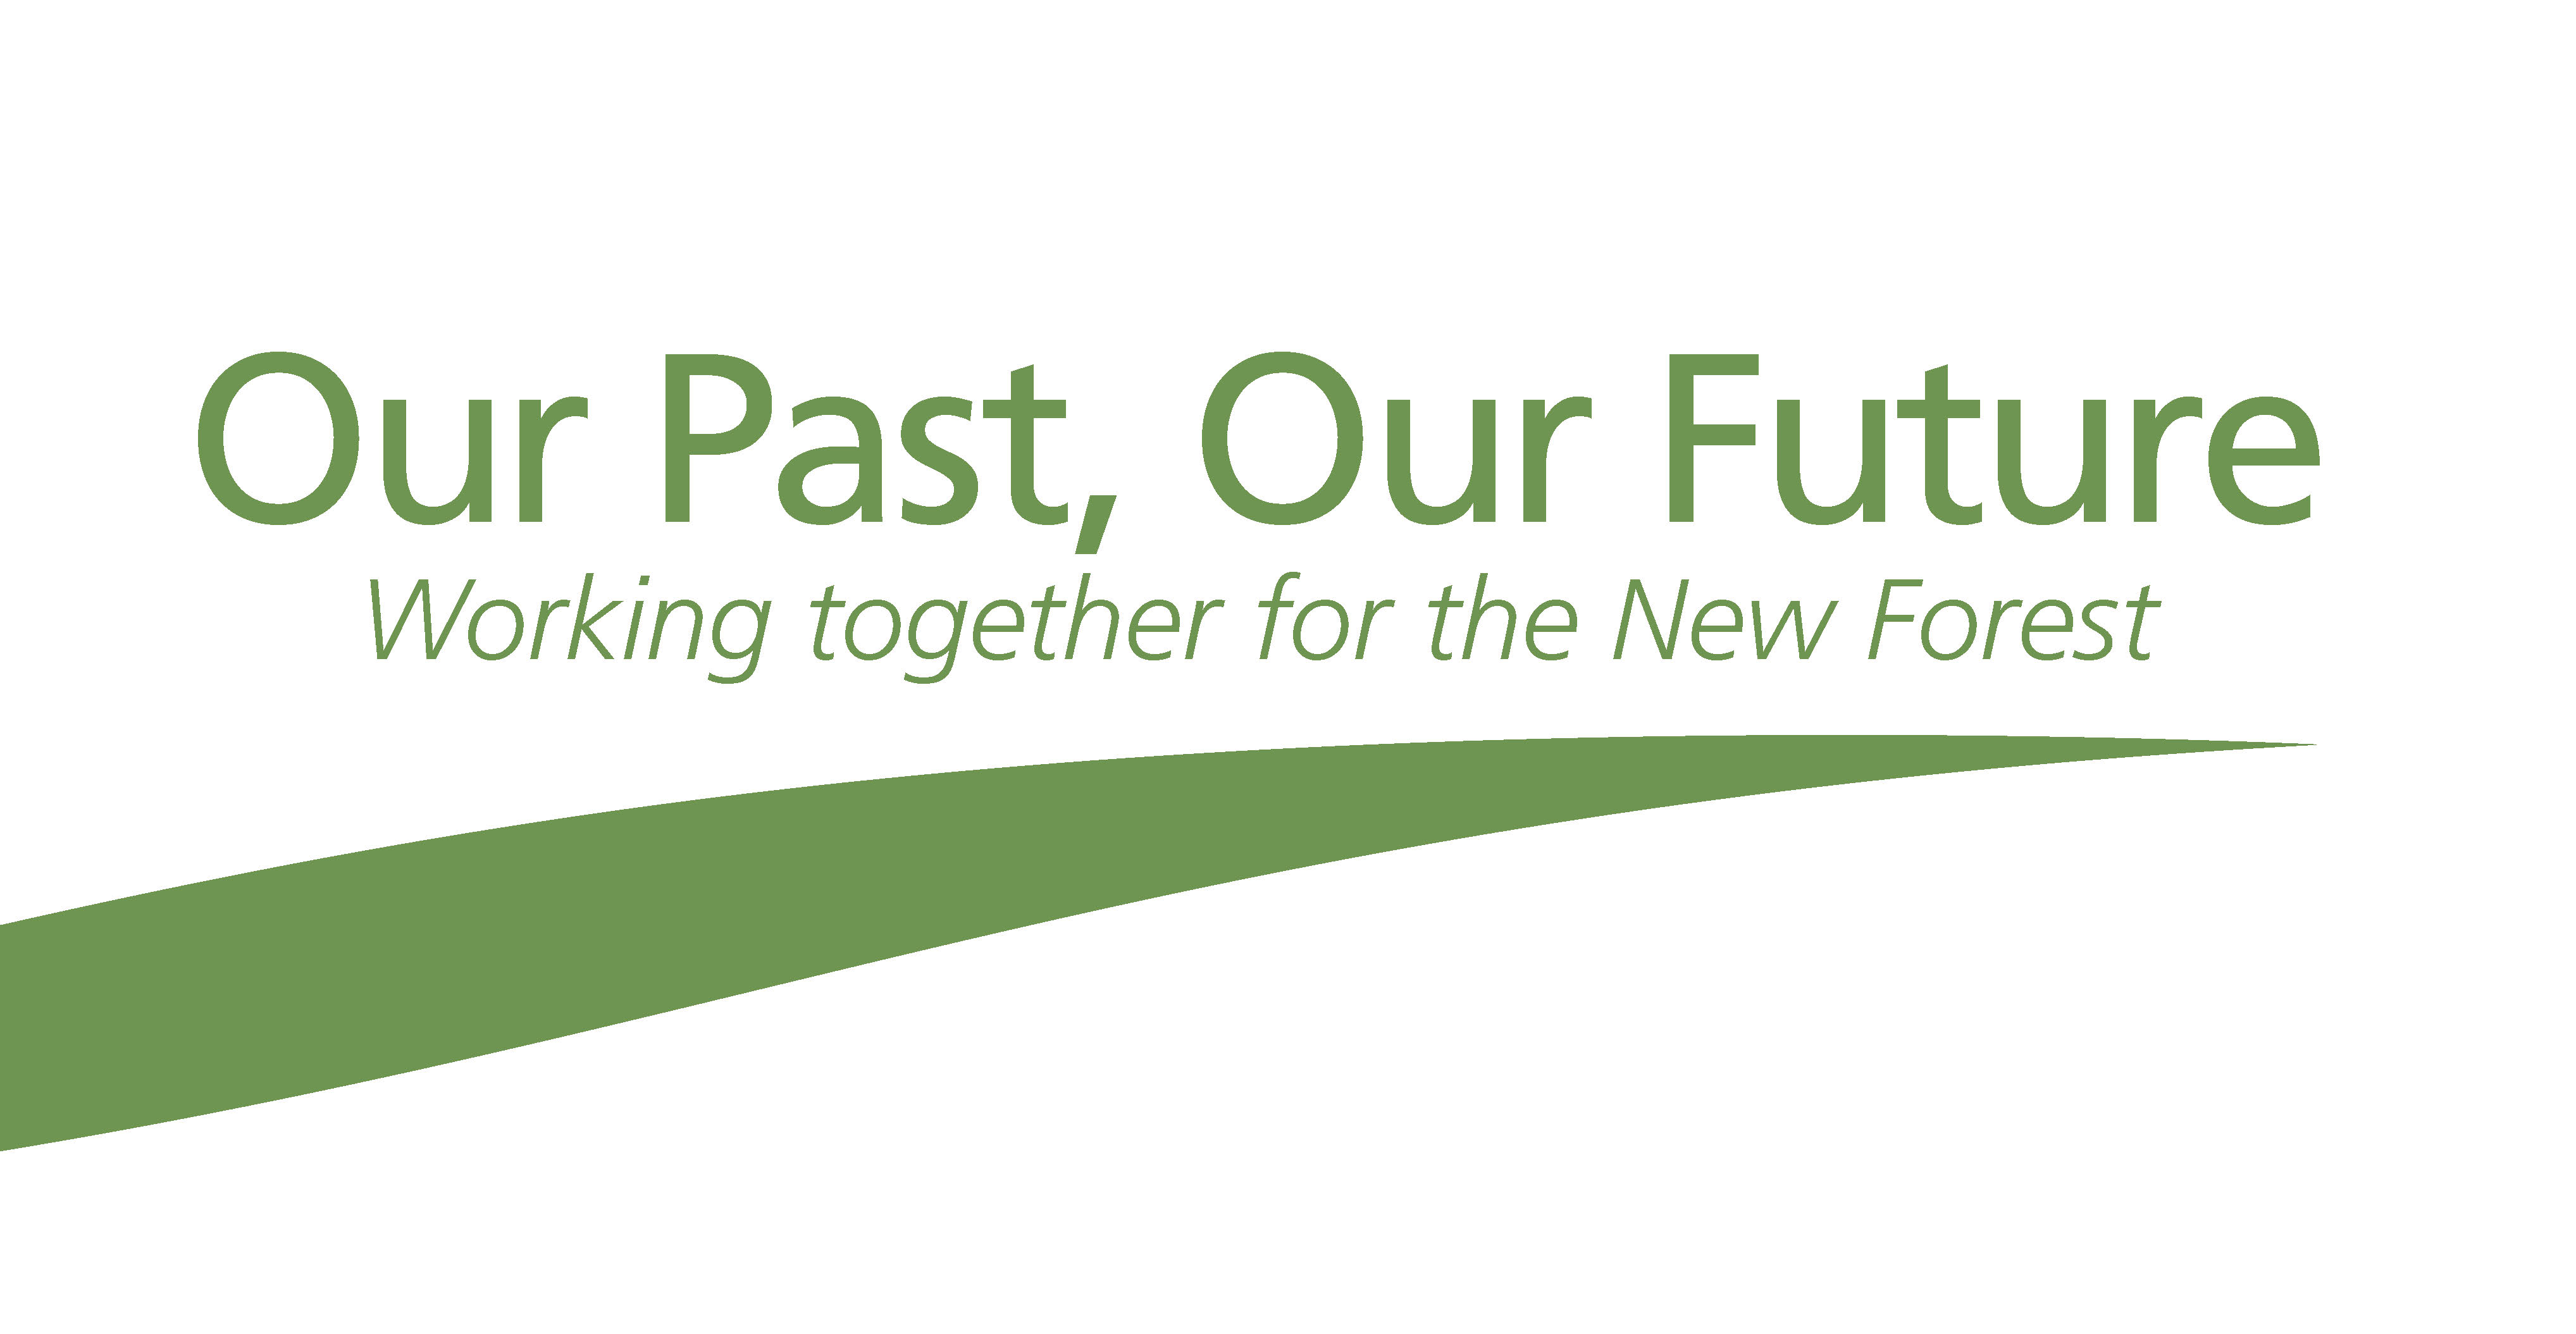 Our Past, Our Future Logo